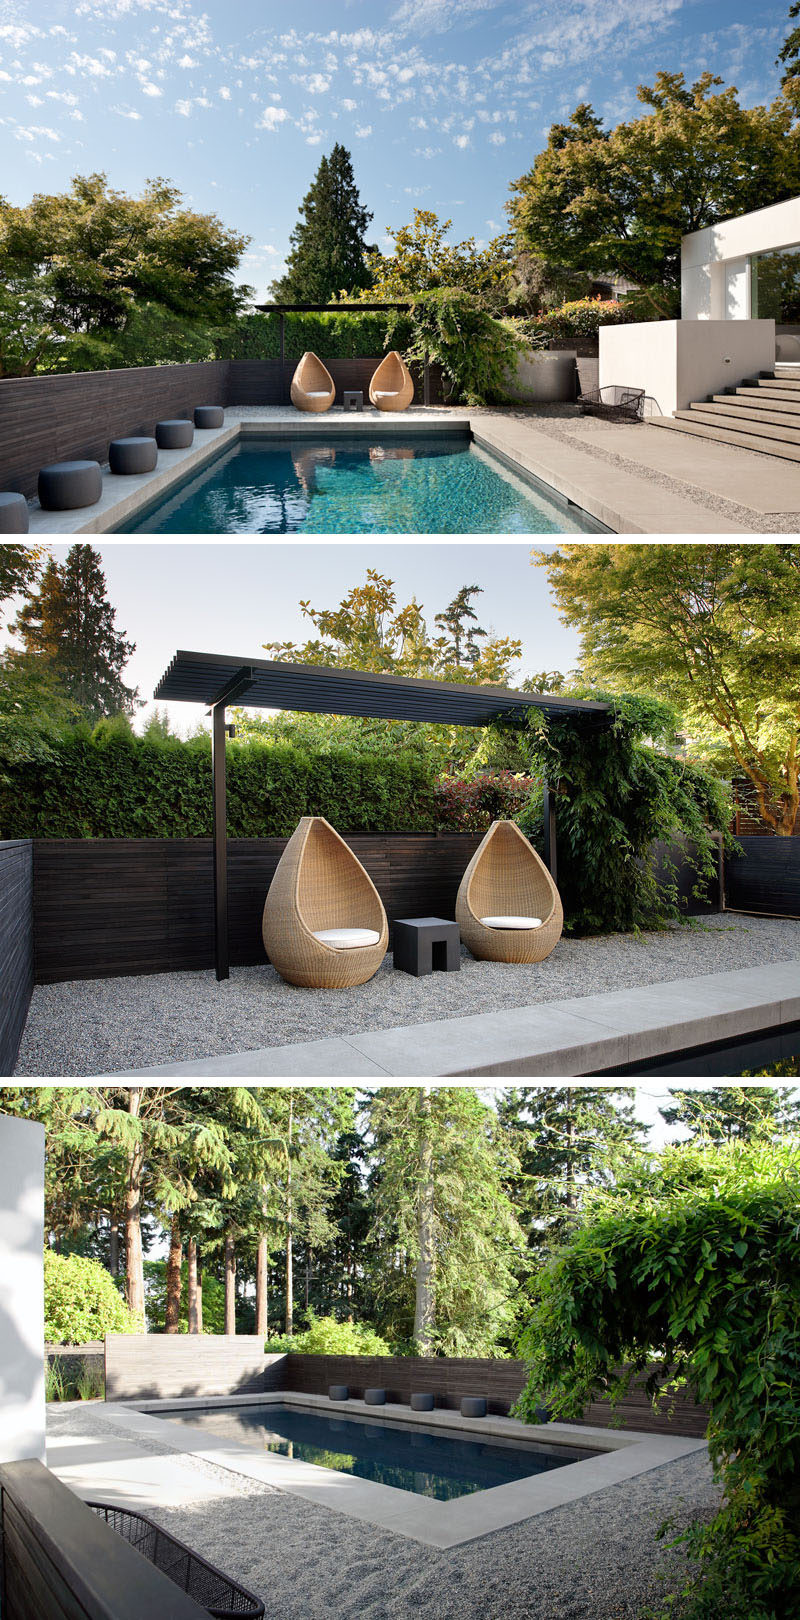 In this modern backyard there's a swimming pool and at one end, two sculptural chairs sit underneath a small pergola. Gravel surrounds the pool and a dark wood fence provides privacy. #Pergola #ModernBackyard #SwimmingPool #Landscaping #LandscapeDesign